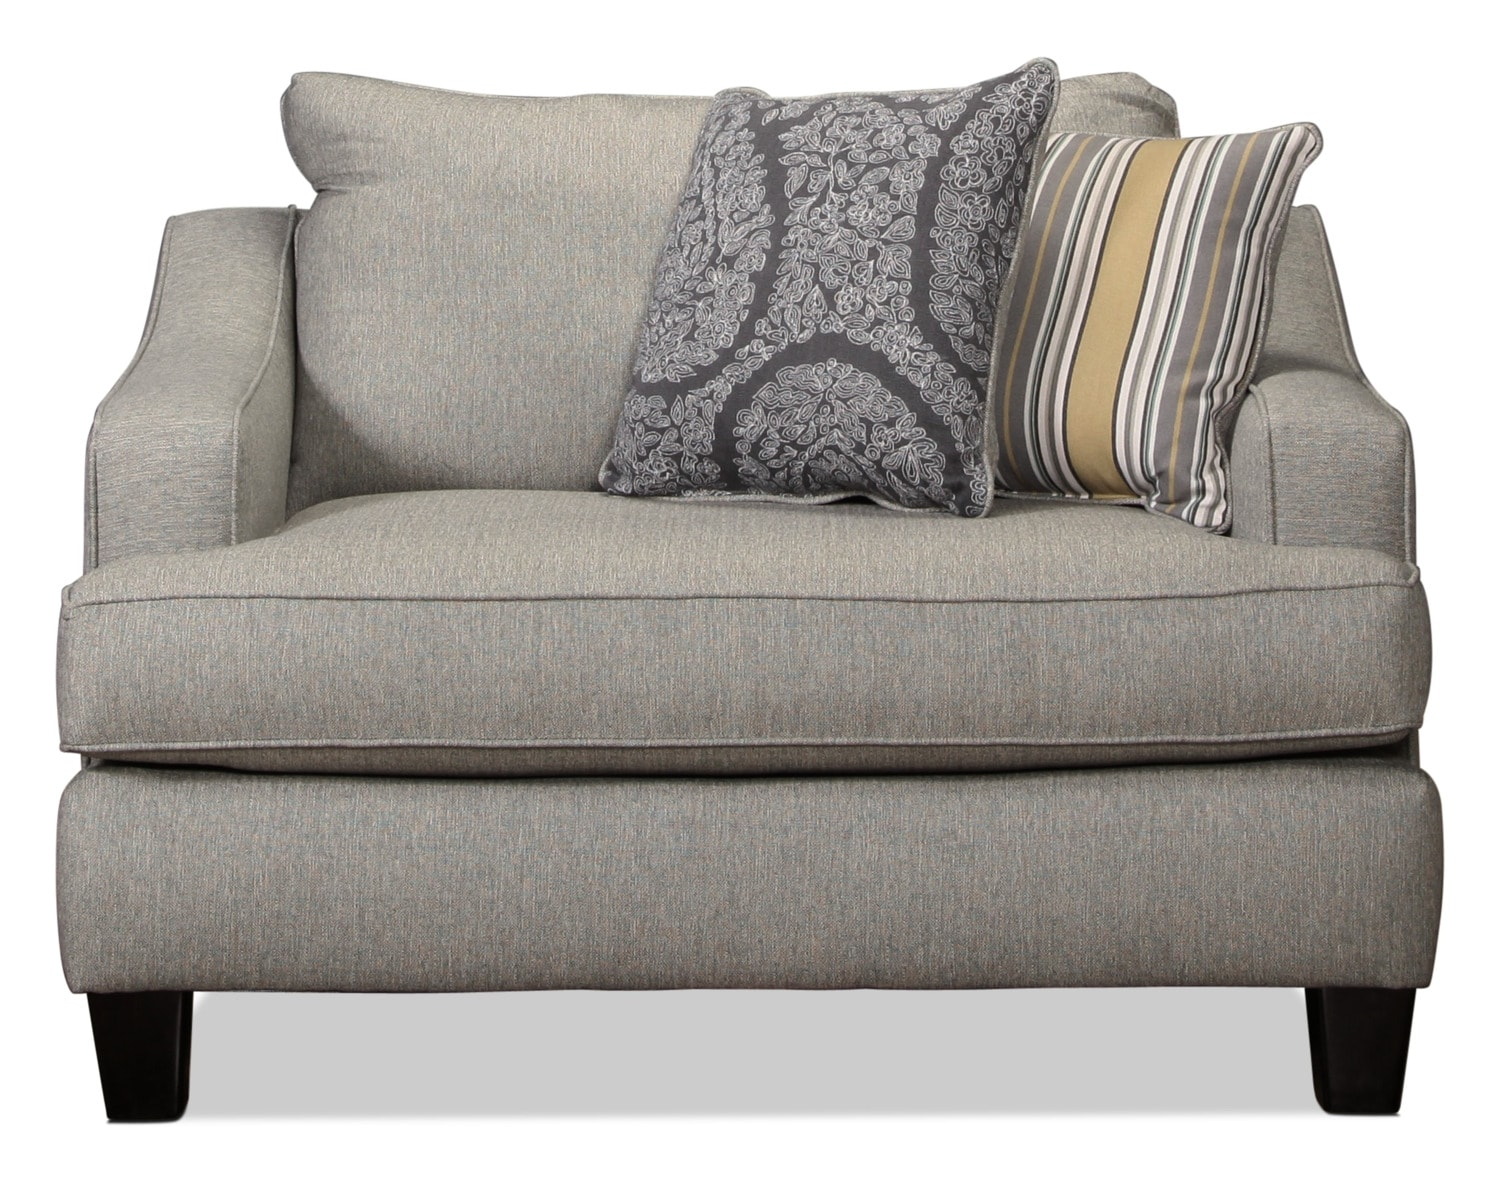 Wilmington Queen Sleeper Sofa - Platinum | Levin Furniture